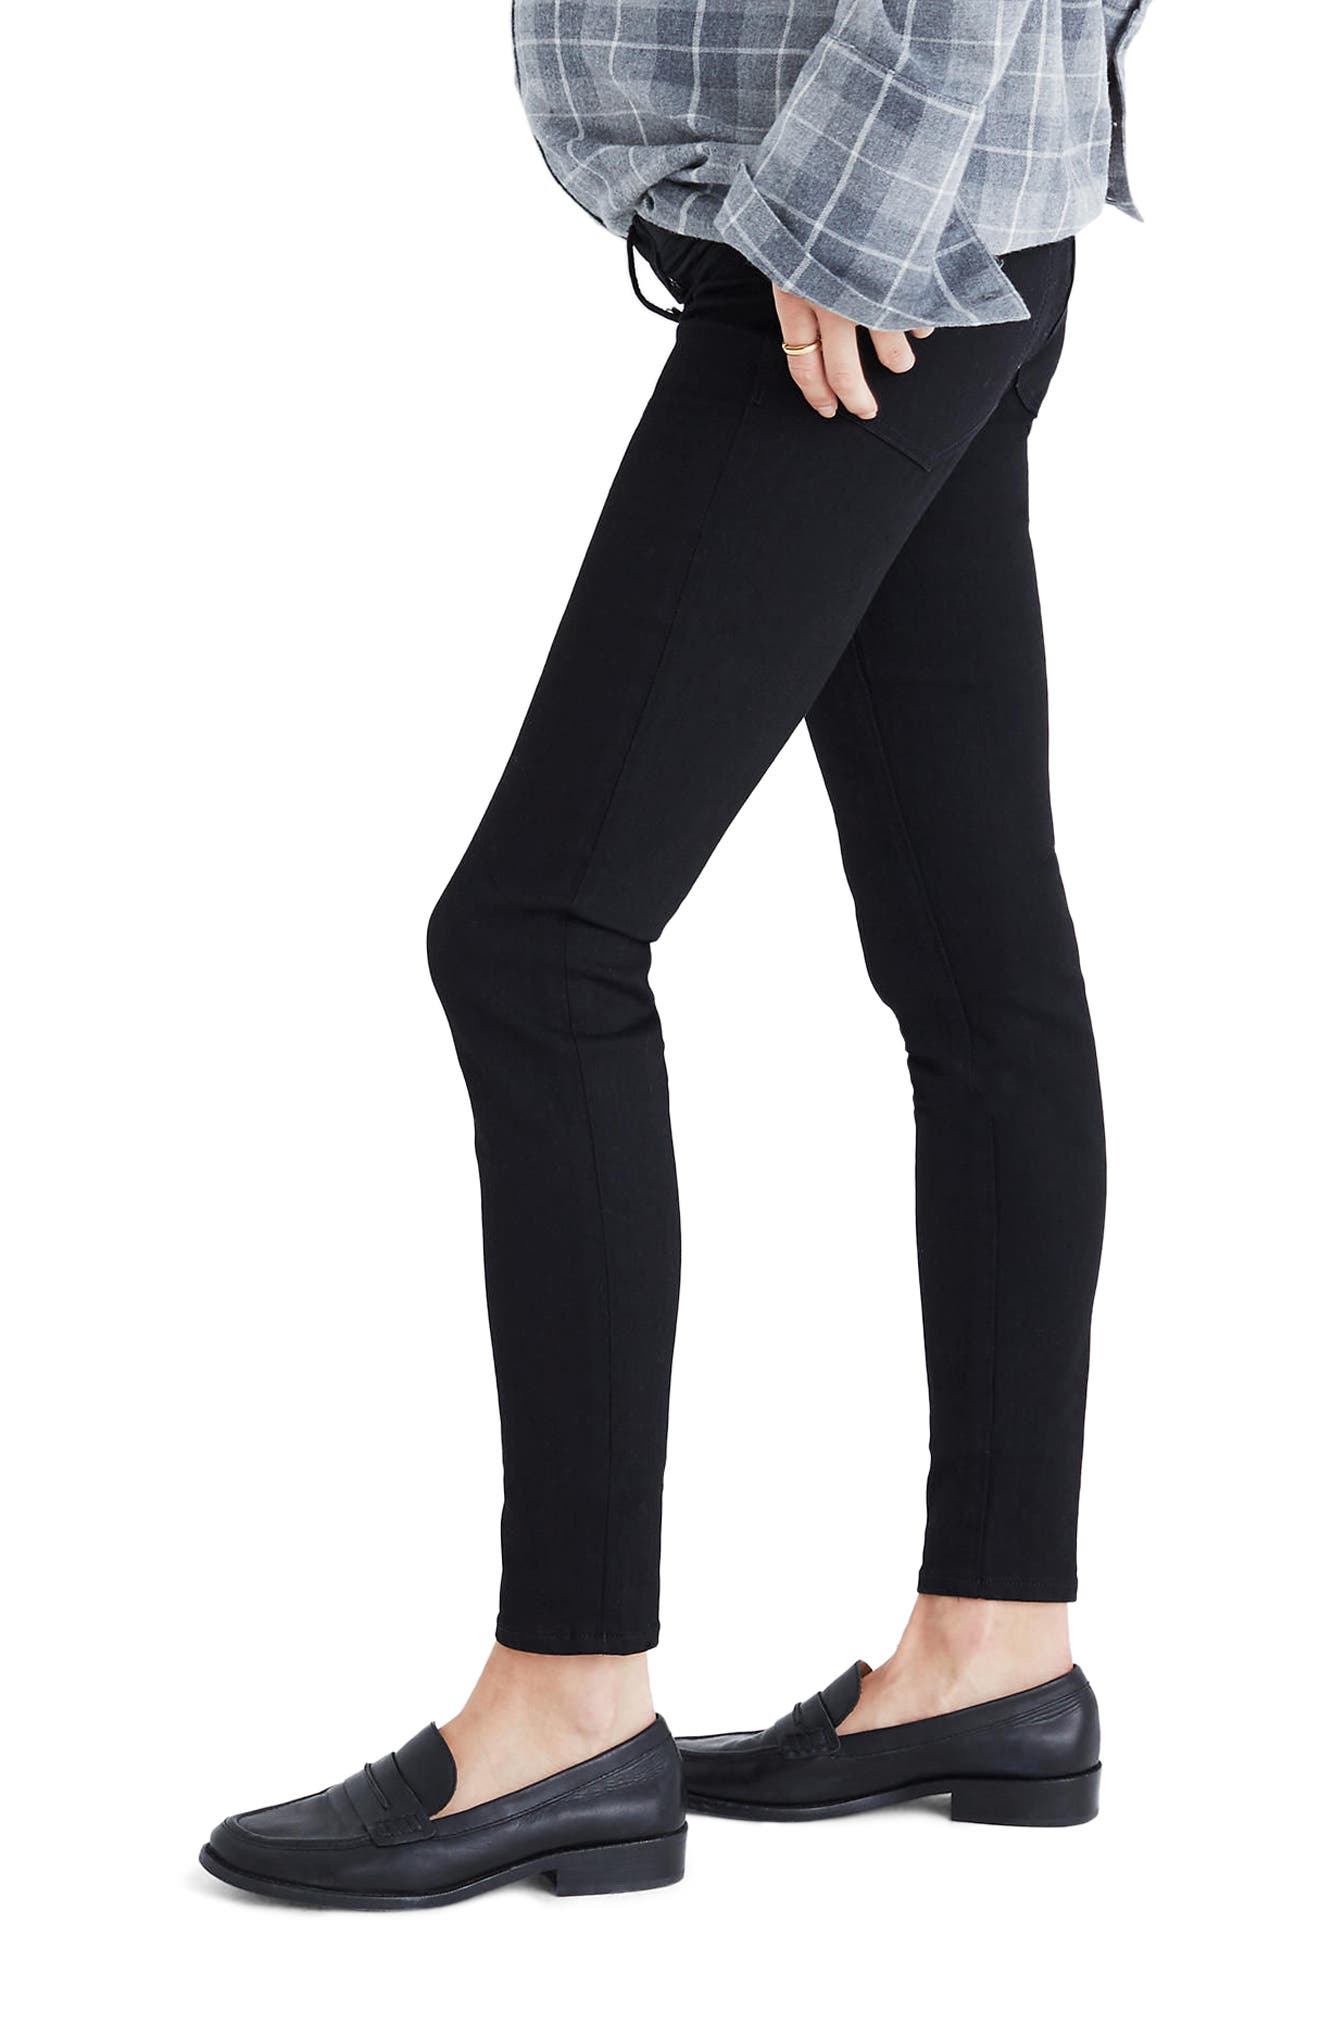 Maternity Skinny Jeans,                             Alternate thumbnail 3, color,                             Black Frost